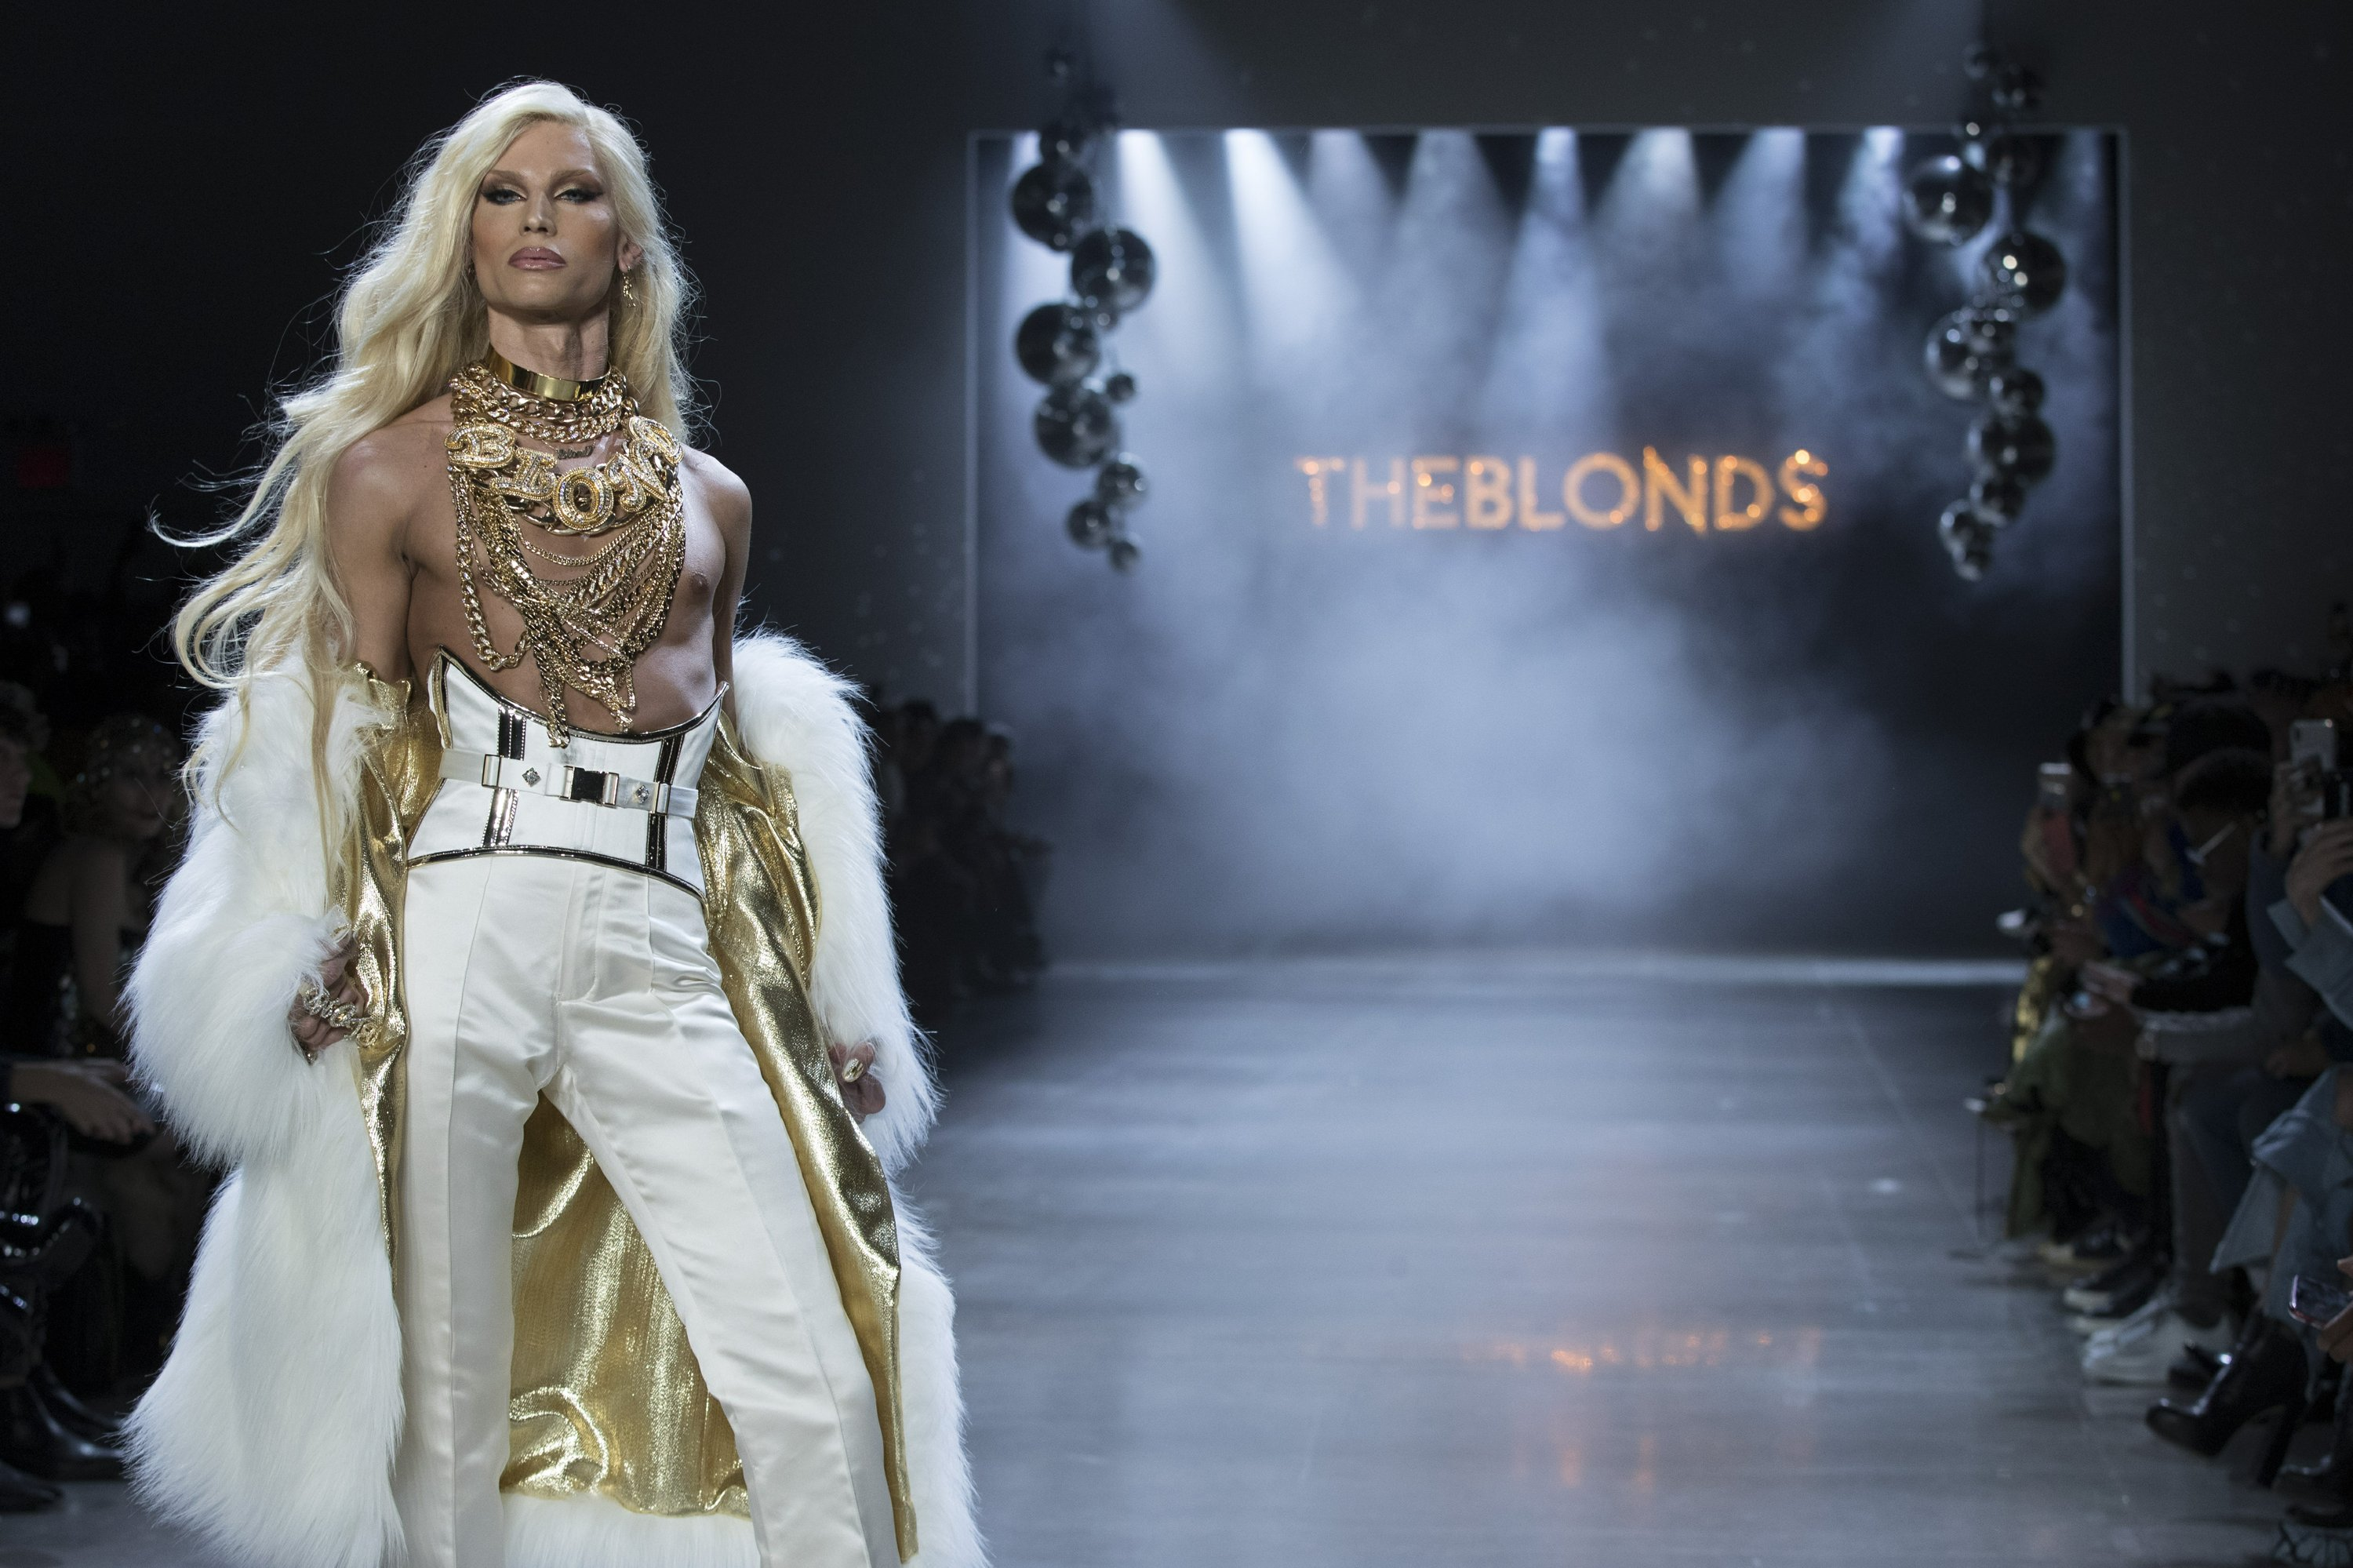 Lil' Kim struts and sings at The Blonds' saucy fashion show